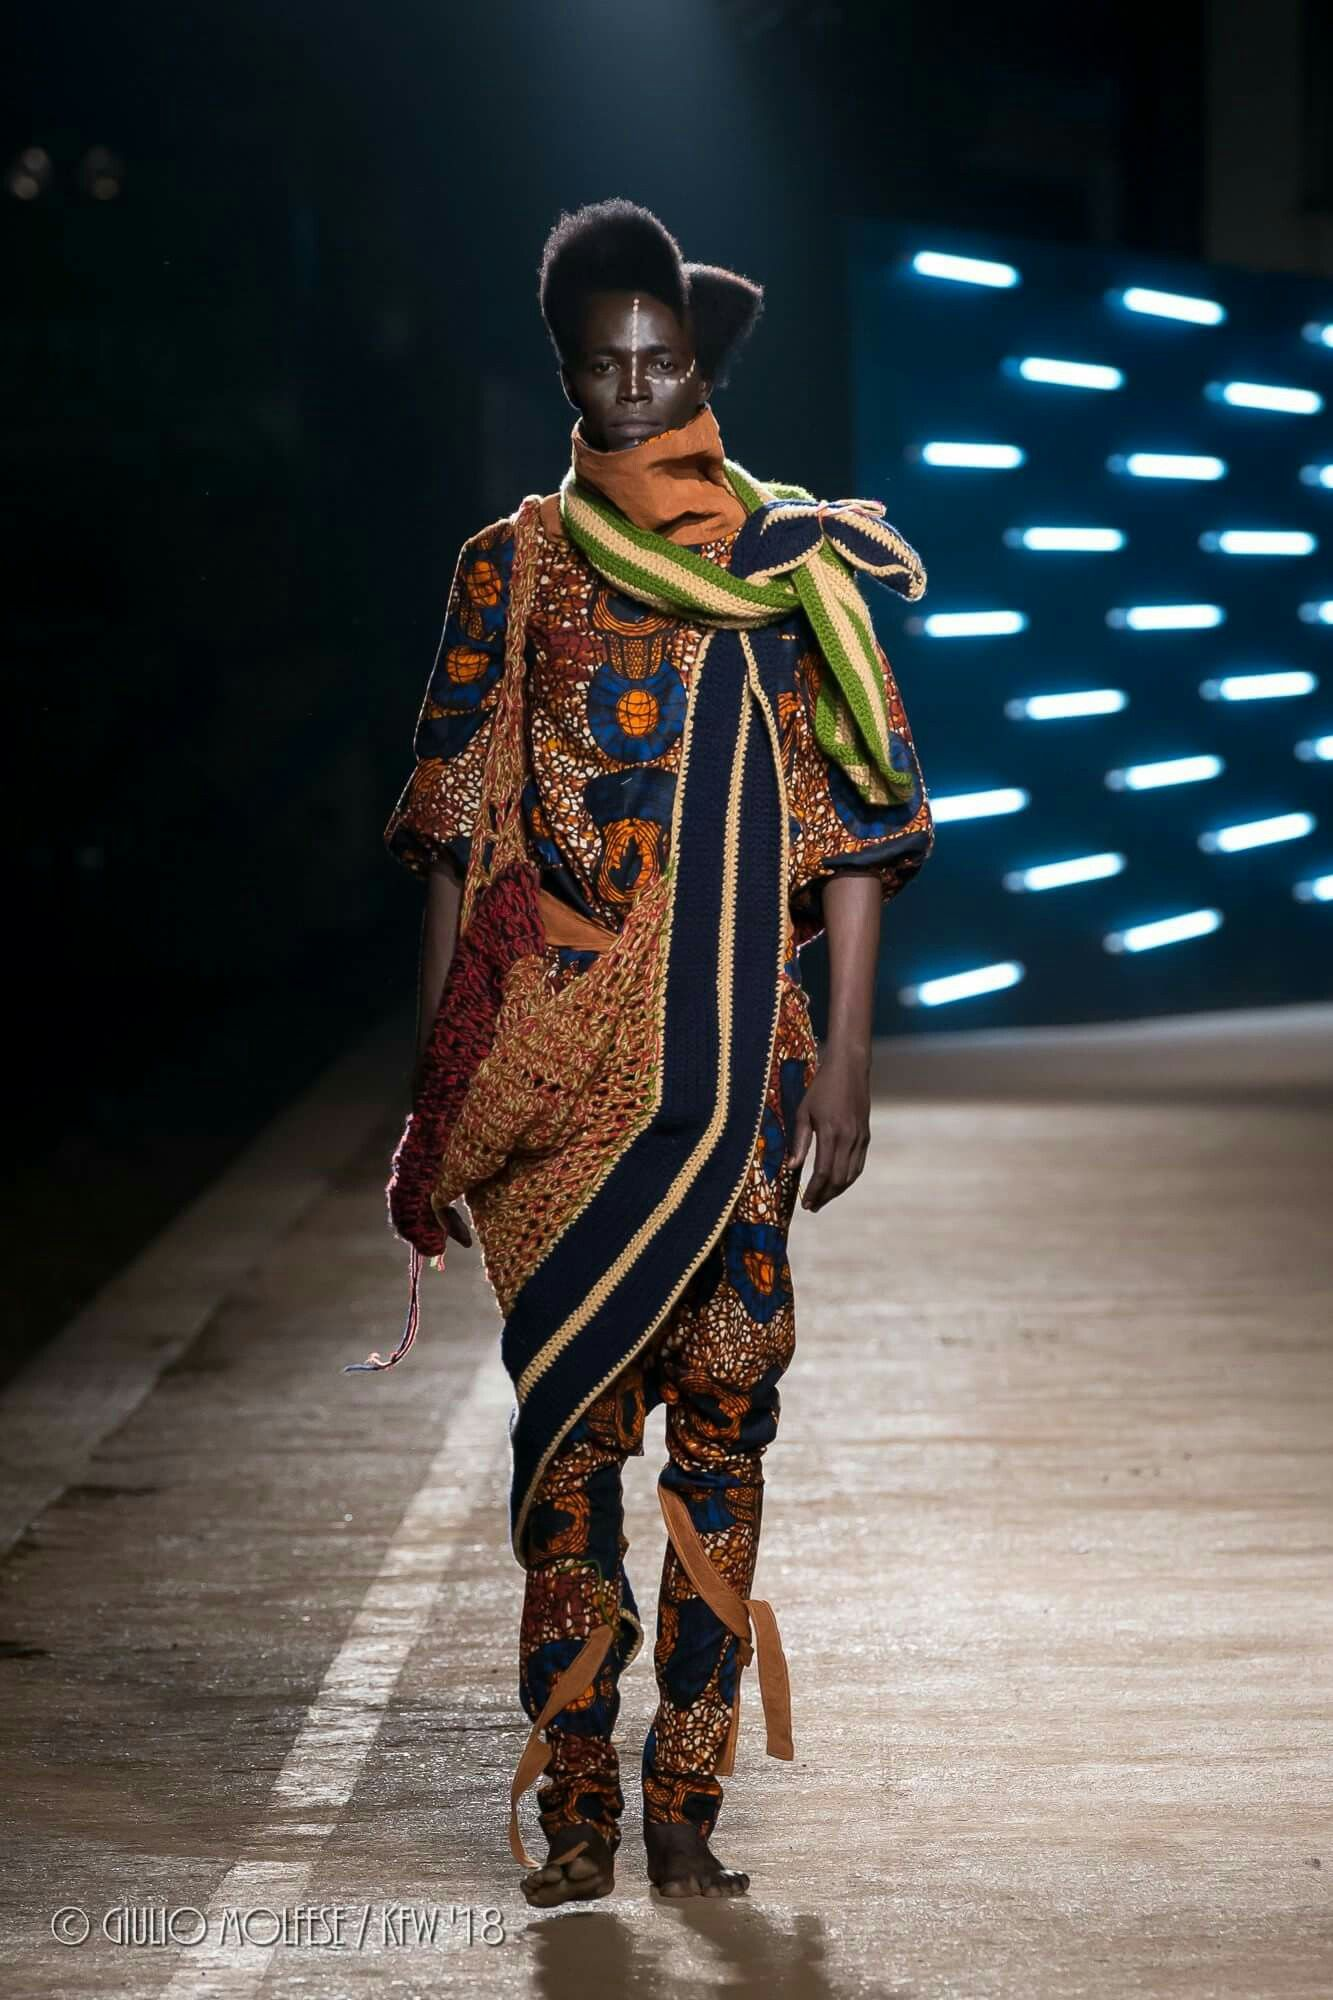 Igc Collection Ss1 Kfw Collection Kampala Disaster Style Afro Vangard Inspiration African Heritage Culture Futuri Fashion Africa Fashion Fashion Week